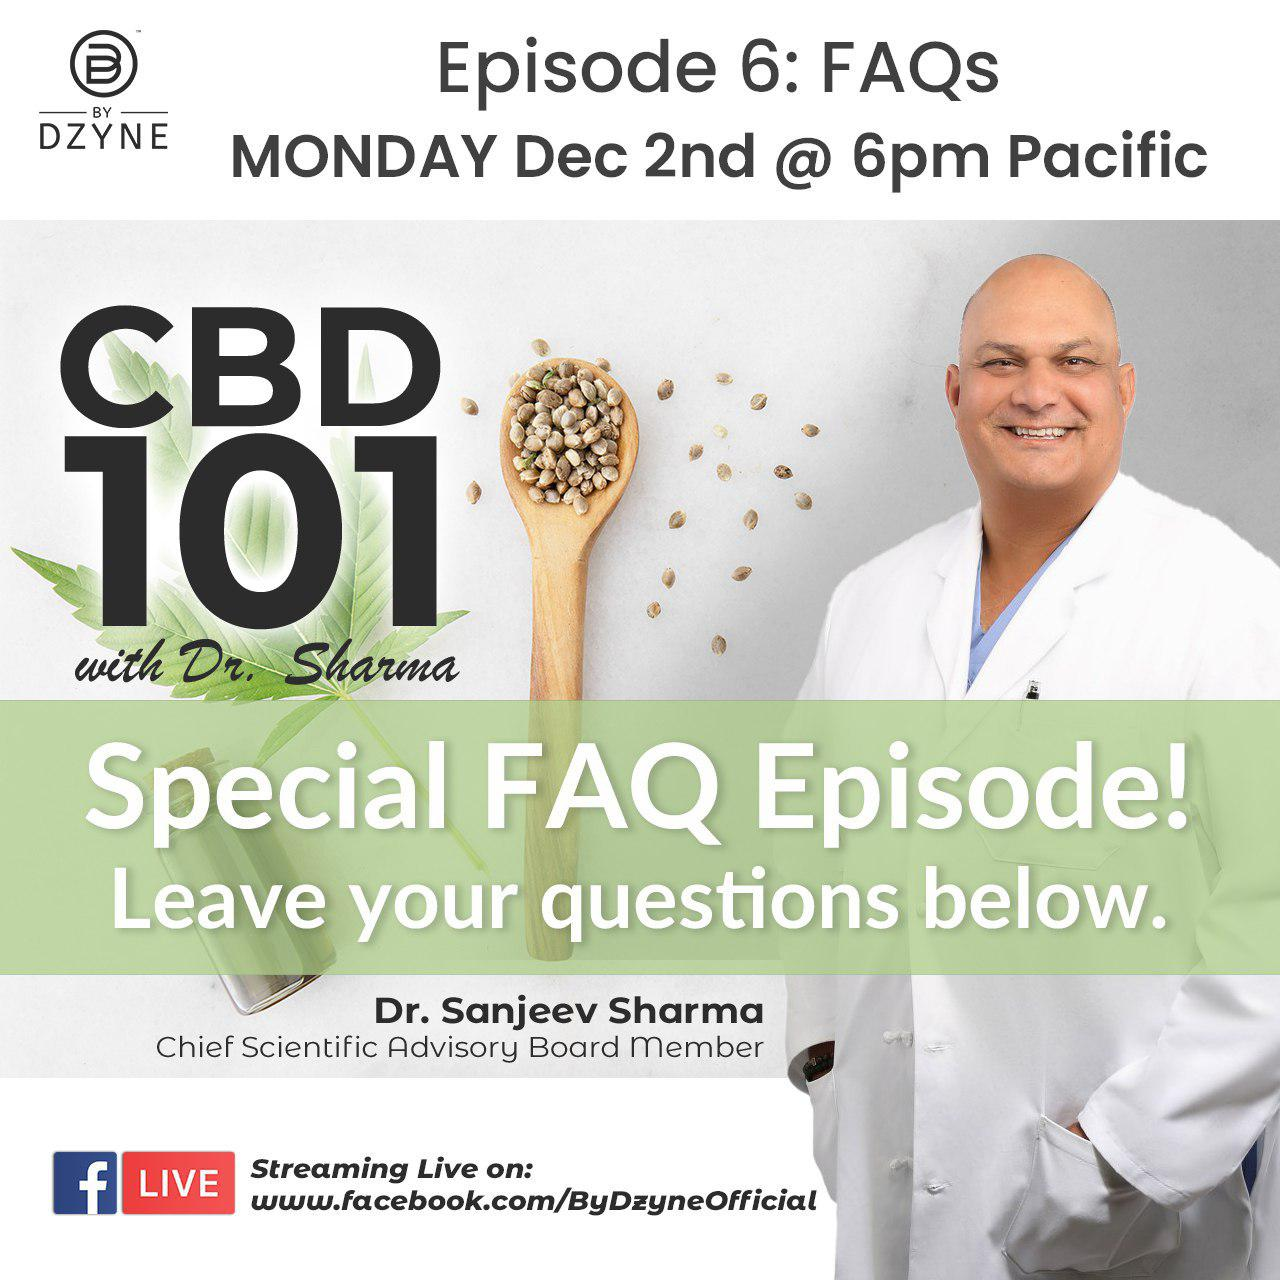 RECAP: Episode 6 – CBD 101 Frequently Asked Questions